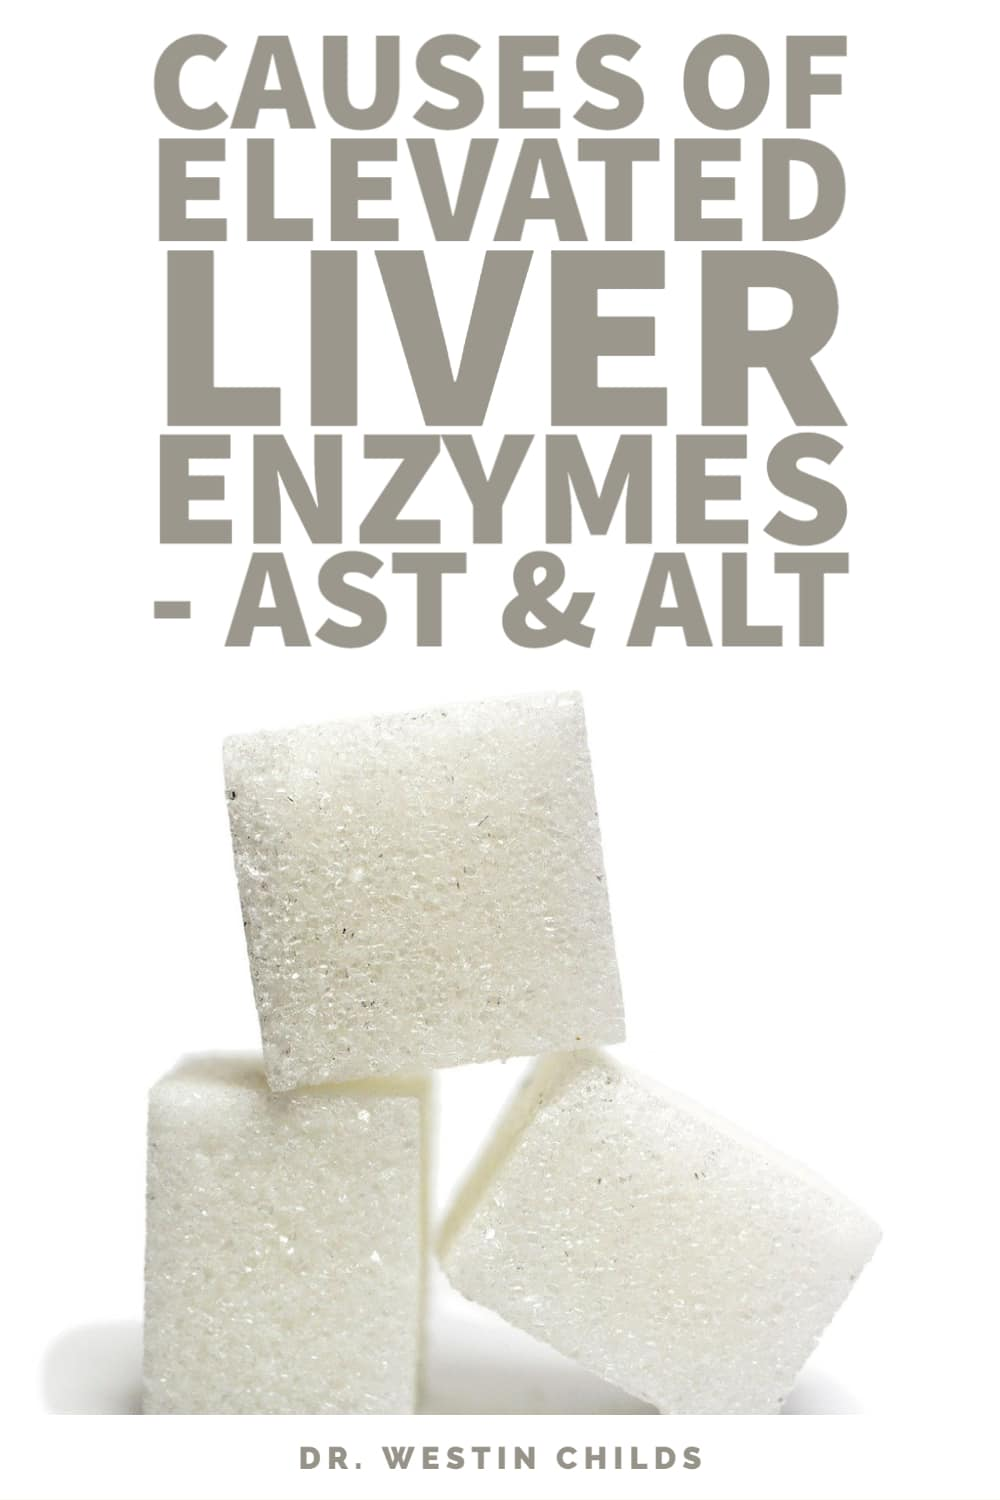 causes of elevated liver enzymes - ast and alt